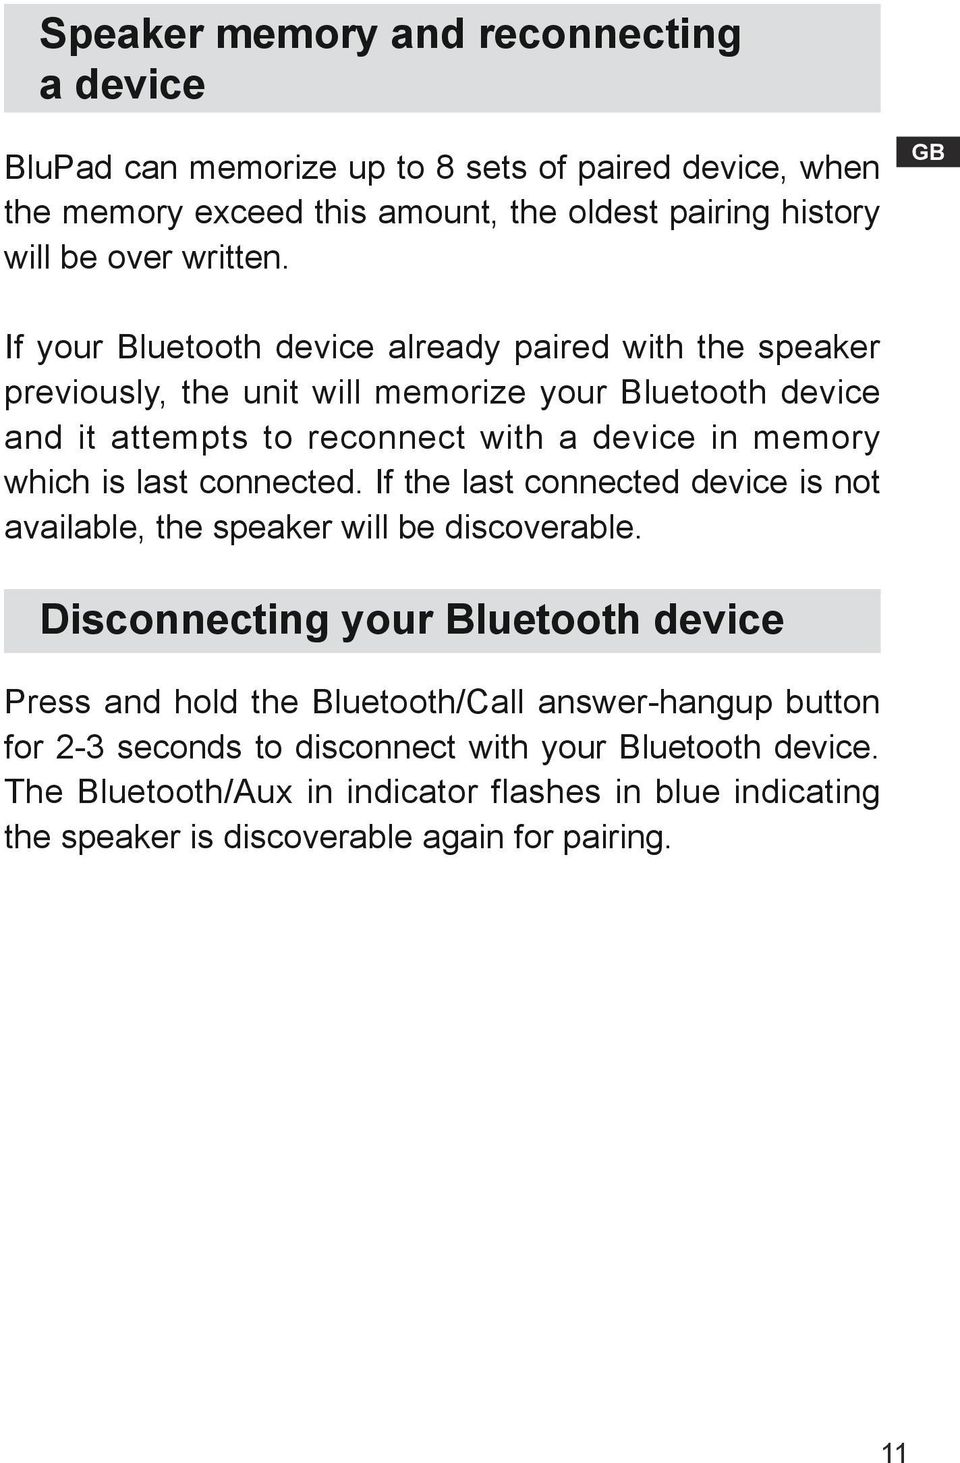 is last connected. If the last connected device is not available, the speaker will be discoverable.